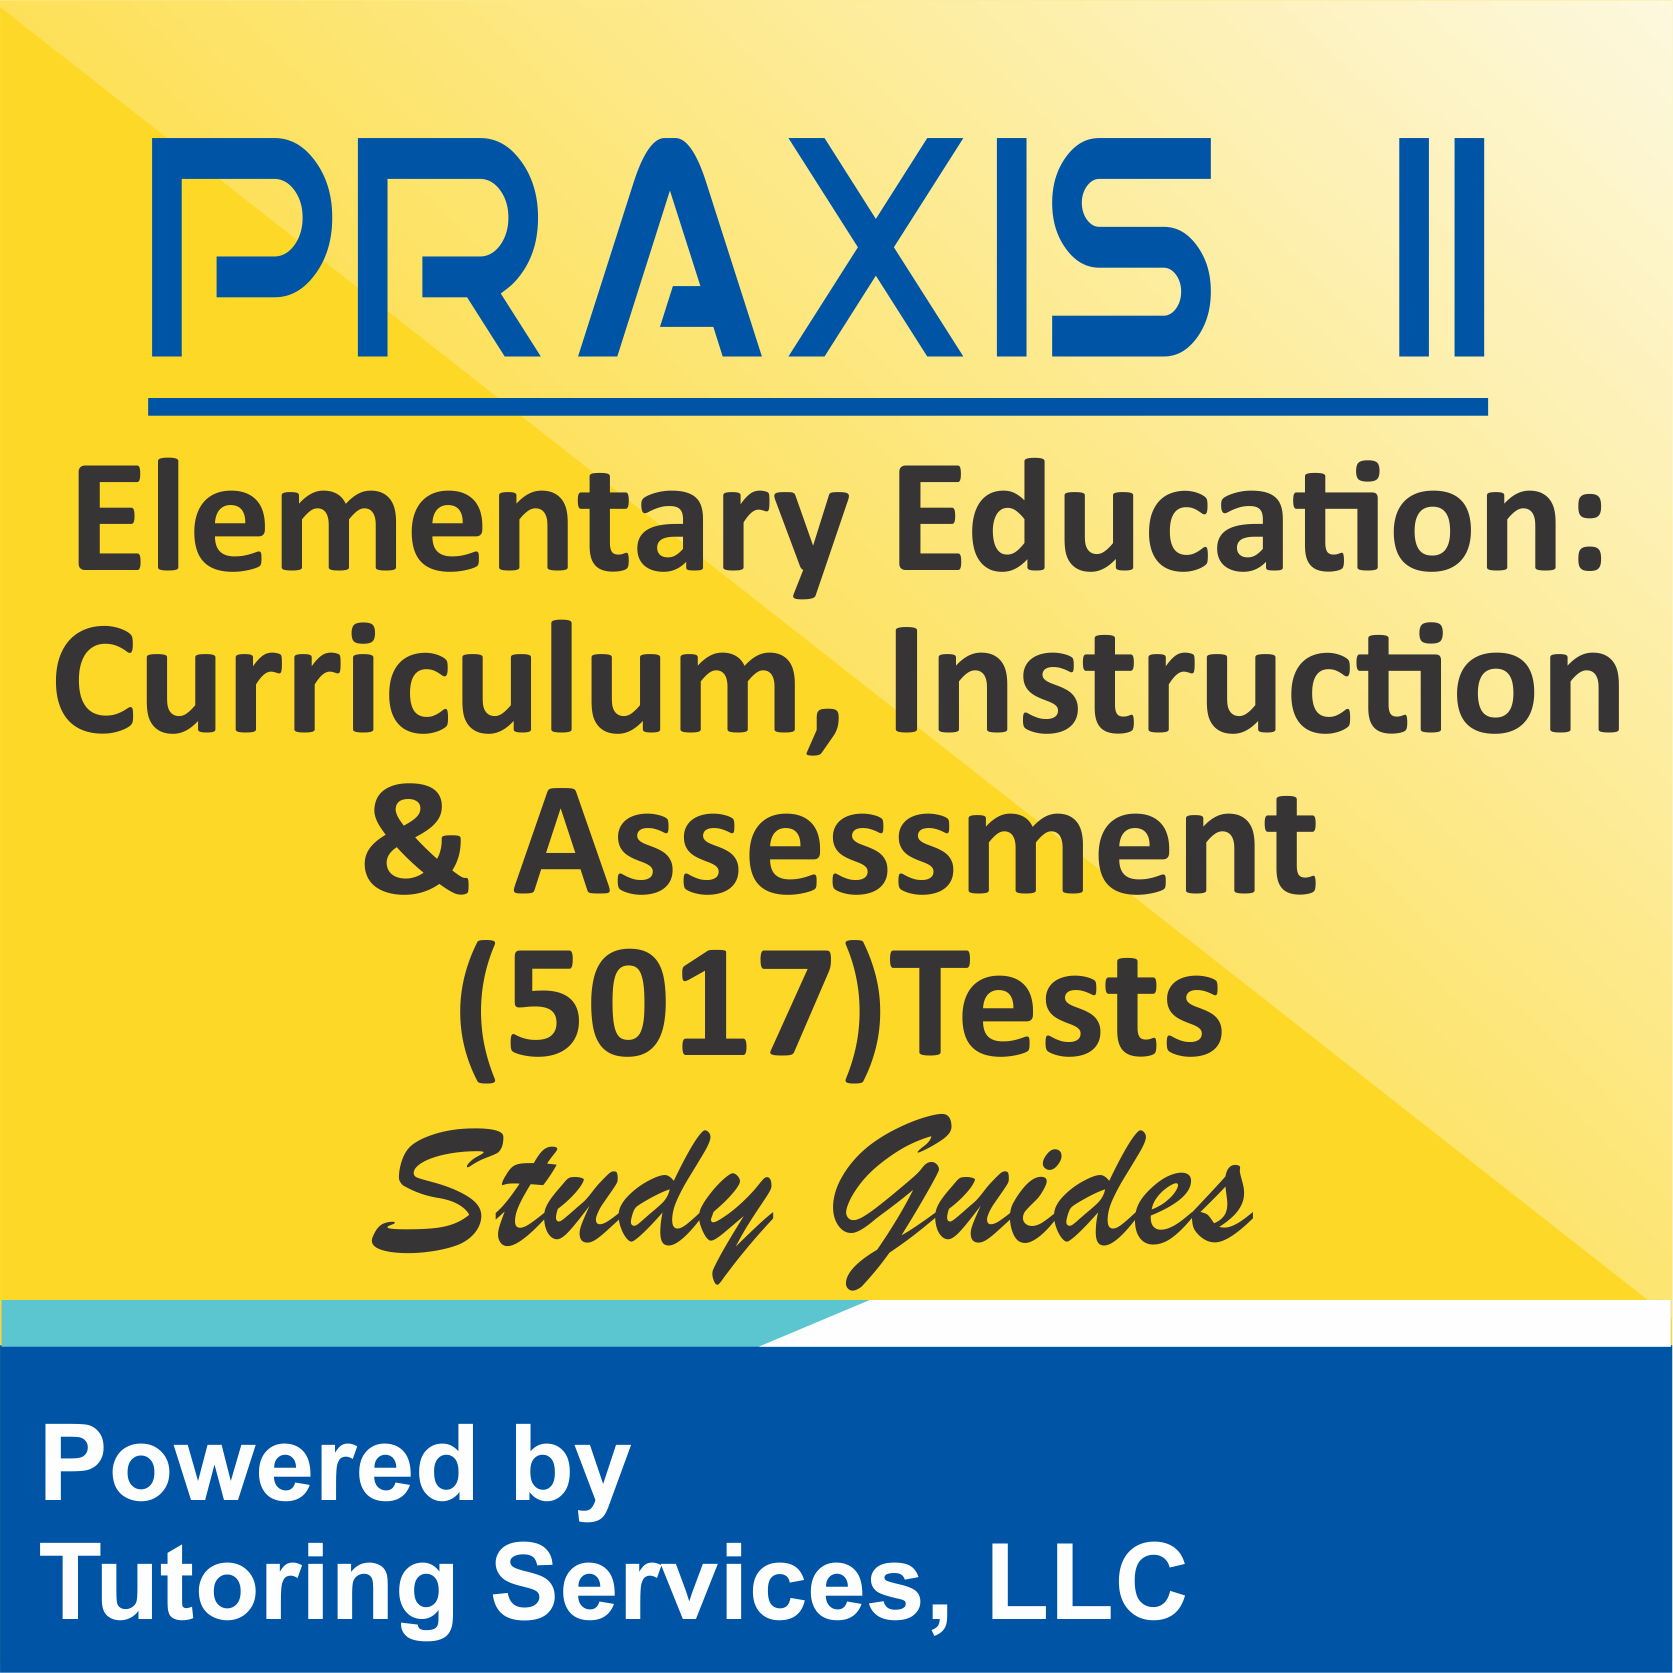 Praxis II Elementary Education: Curriculum, Instruction, and Assessment (5017) Test Information